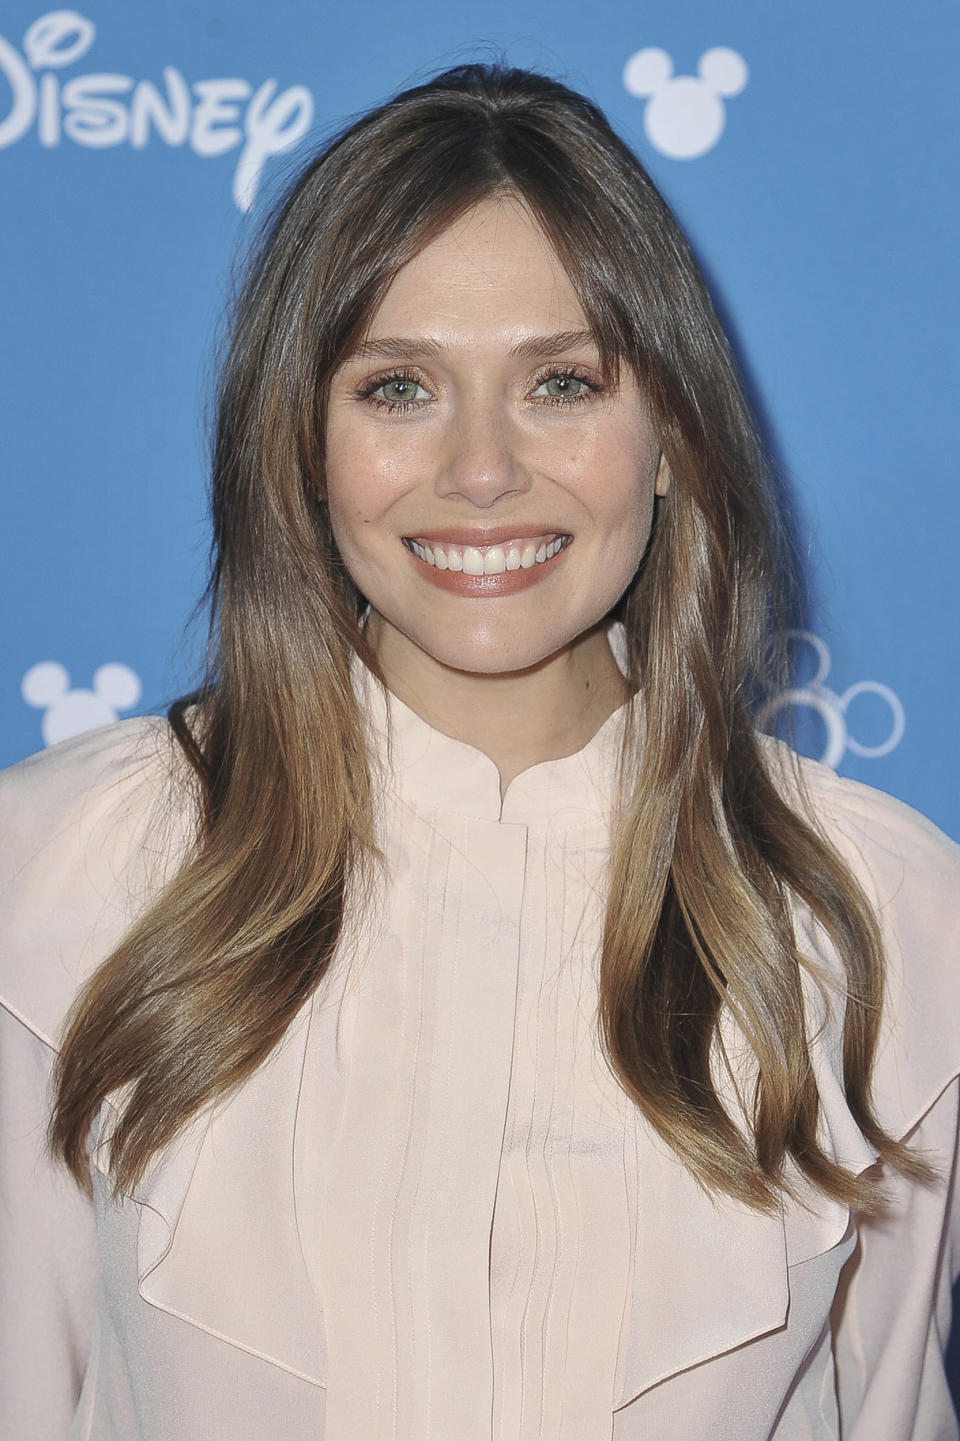 Elizabeth Olsen attends the Disney+ press line at the 2019 D23 Expo on Friday, Aug. 23, 2019, in Los Angeles. (Photo by Richard Shotwell/Invision/AP)